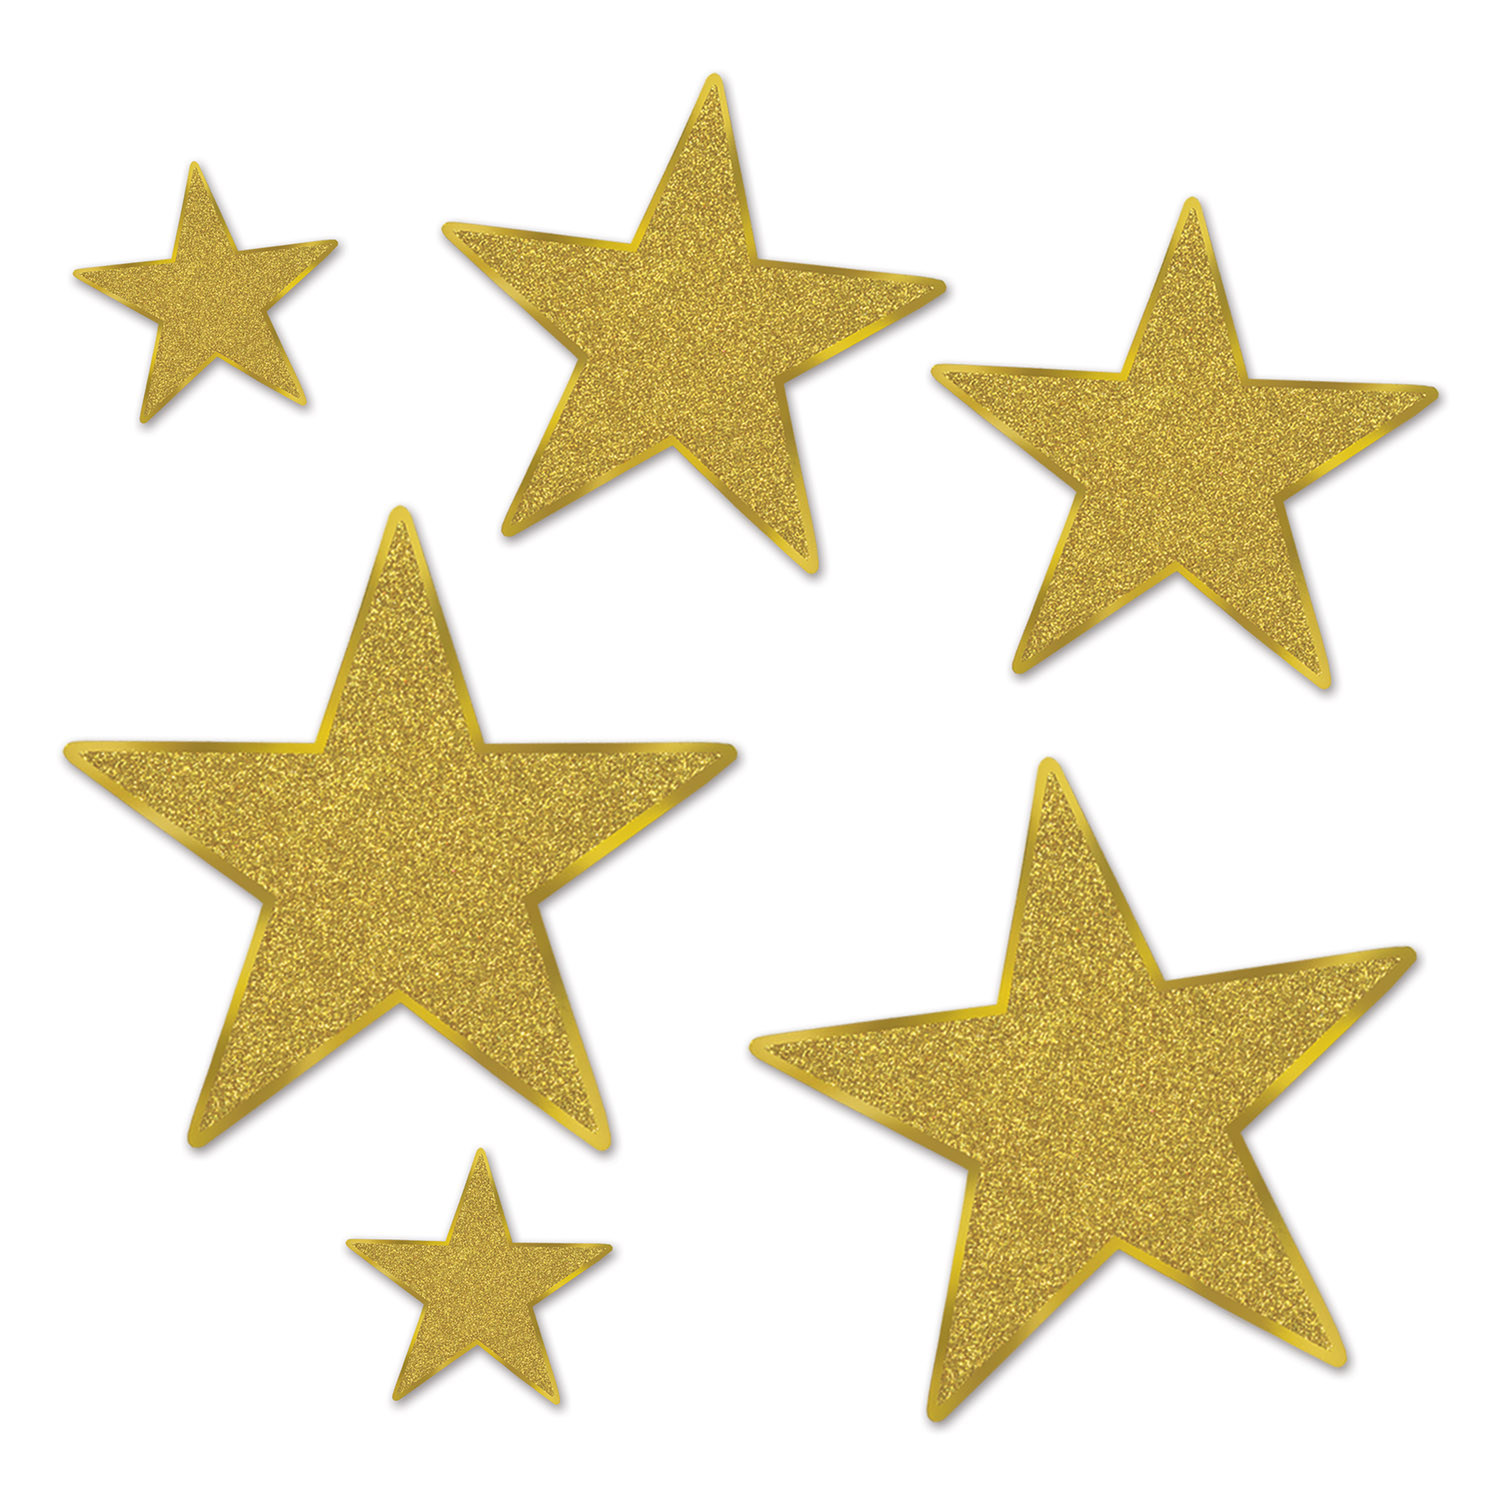 Glittered Foil Star Cutouts (Pack of 72) Glittered Foil Star Cutouts, decoration, gold, glitter, new years eve, star, wholesale, inexpensive, bulk